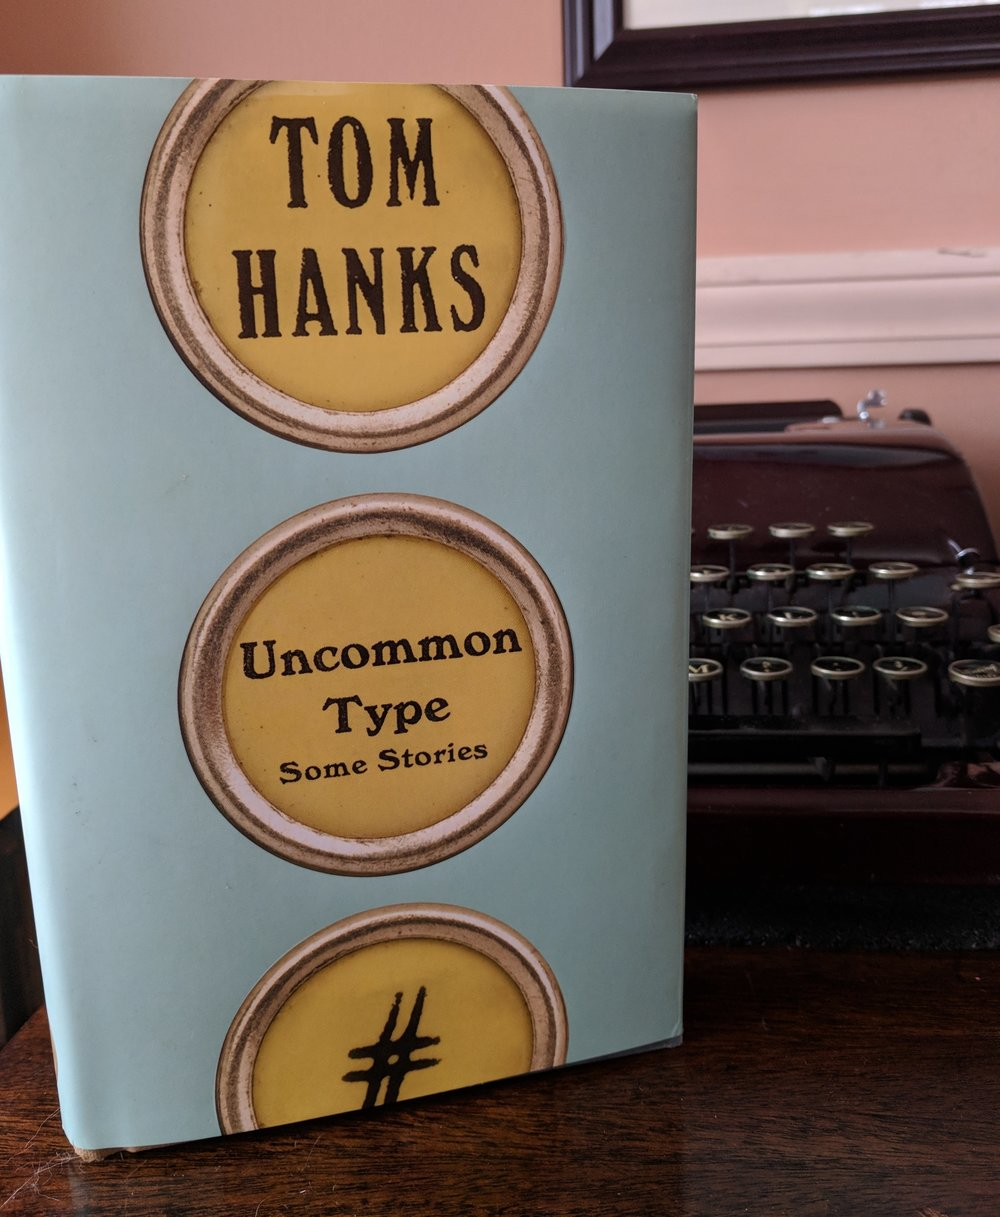 Tom HanksUncommon Type - These are good stories. They are weird stories too and it's the weirdness that I find most interesting. What's weird? There are more happy endings than tragic ones and yet it does not diminish the stories. It's not as if they had unhappy endings, screen-tested poorly, and were rewritten at the studio's insistence. At least, I don't think any of that went on. Instead, I think it was Nora Ephron's influence and Tom Hanks' character that brought this about. I'm grateful for whatever did it. It's good to be reminded that comedy (in the dramatic sense rather than ha-ha) can be as powerful as tragedy. Tom Hanks is a good writer and he likes typewriters even more than I do.